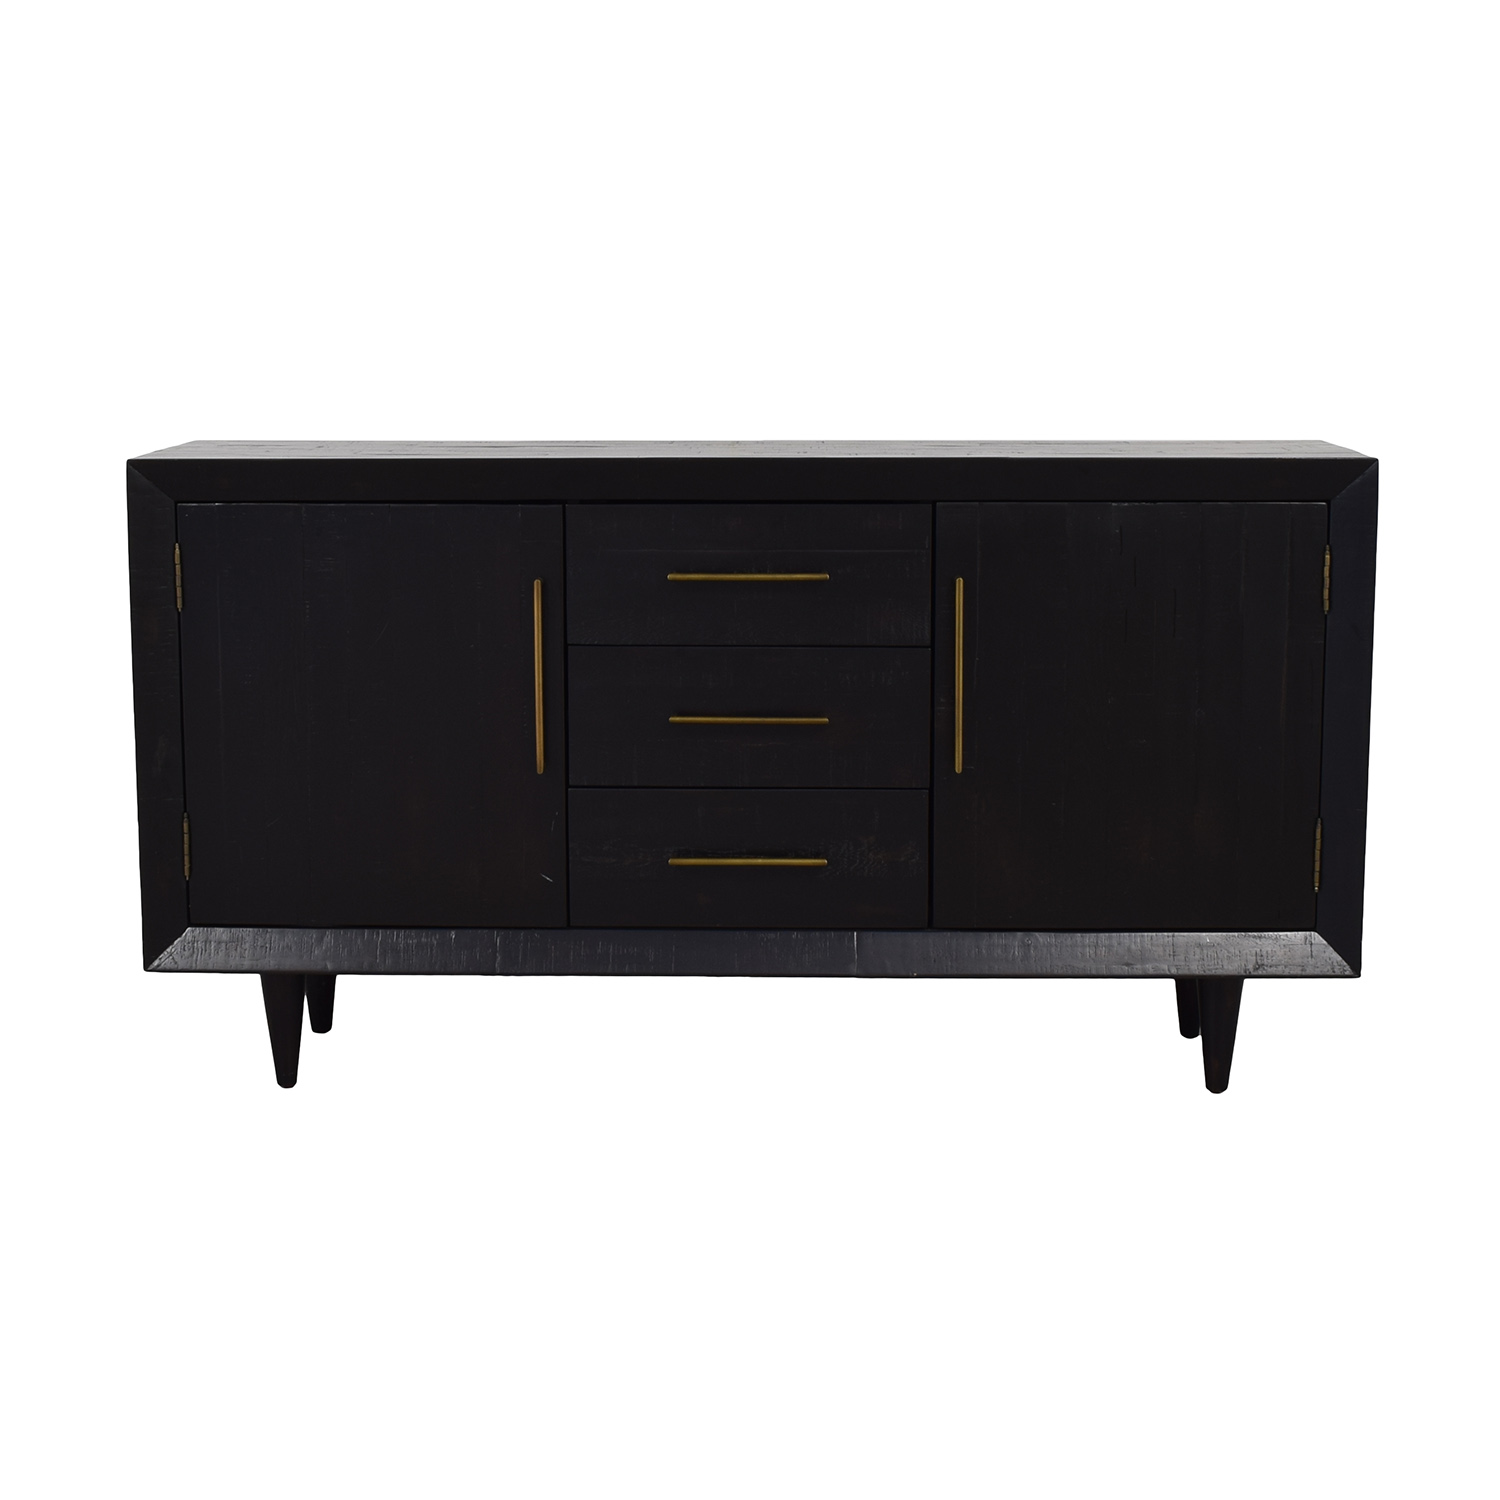 buy One Kings Lane Wood Buffet Credenza One Kings Lane Storage